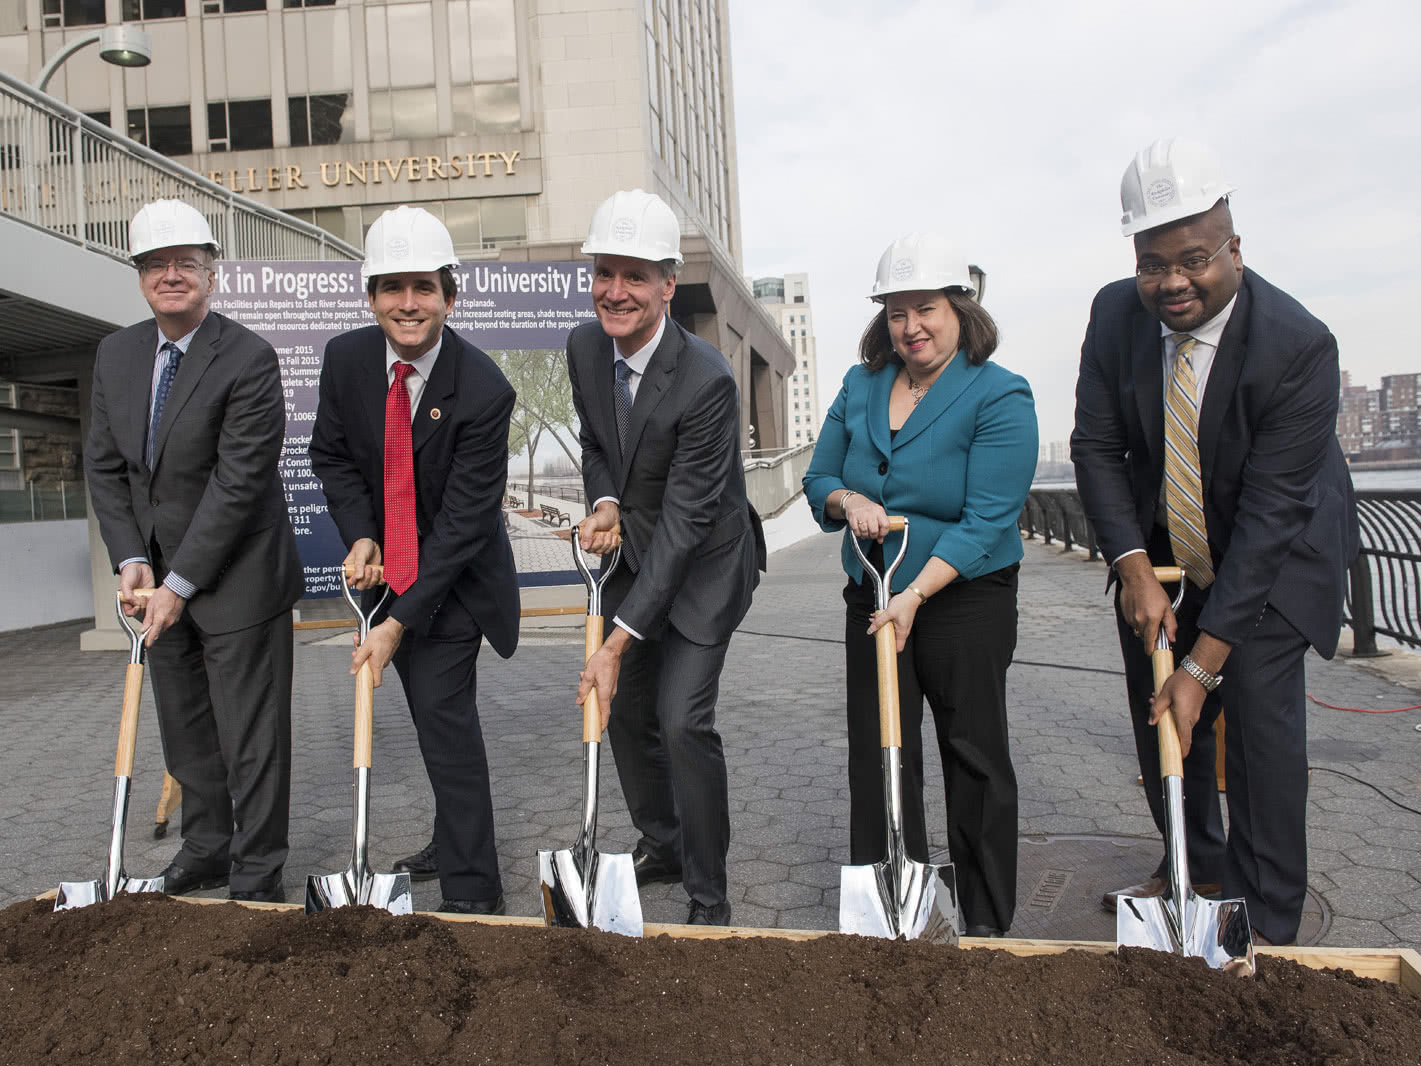 Breaking ground: (From left to right) Bill Castro, Benjamin Kallos, Marc Tessier-Lavigne, Minna Elias, and Matthew Washington celebrate as the project to repair the seawall near Rockefeller and to revitalize the East River Esplanade commences.